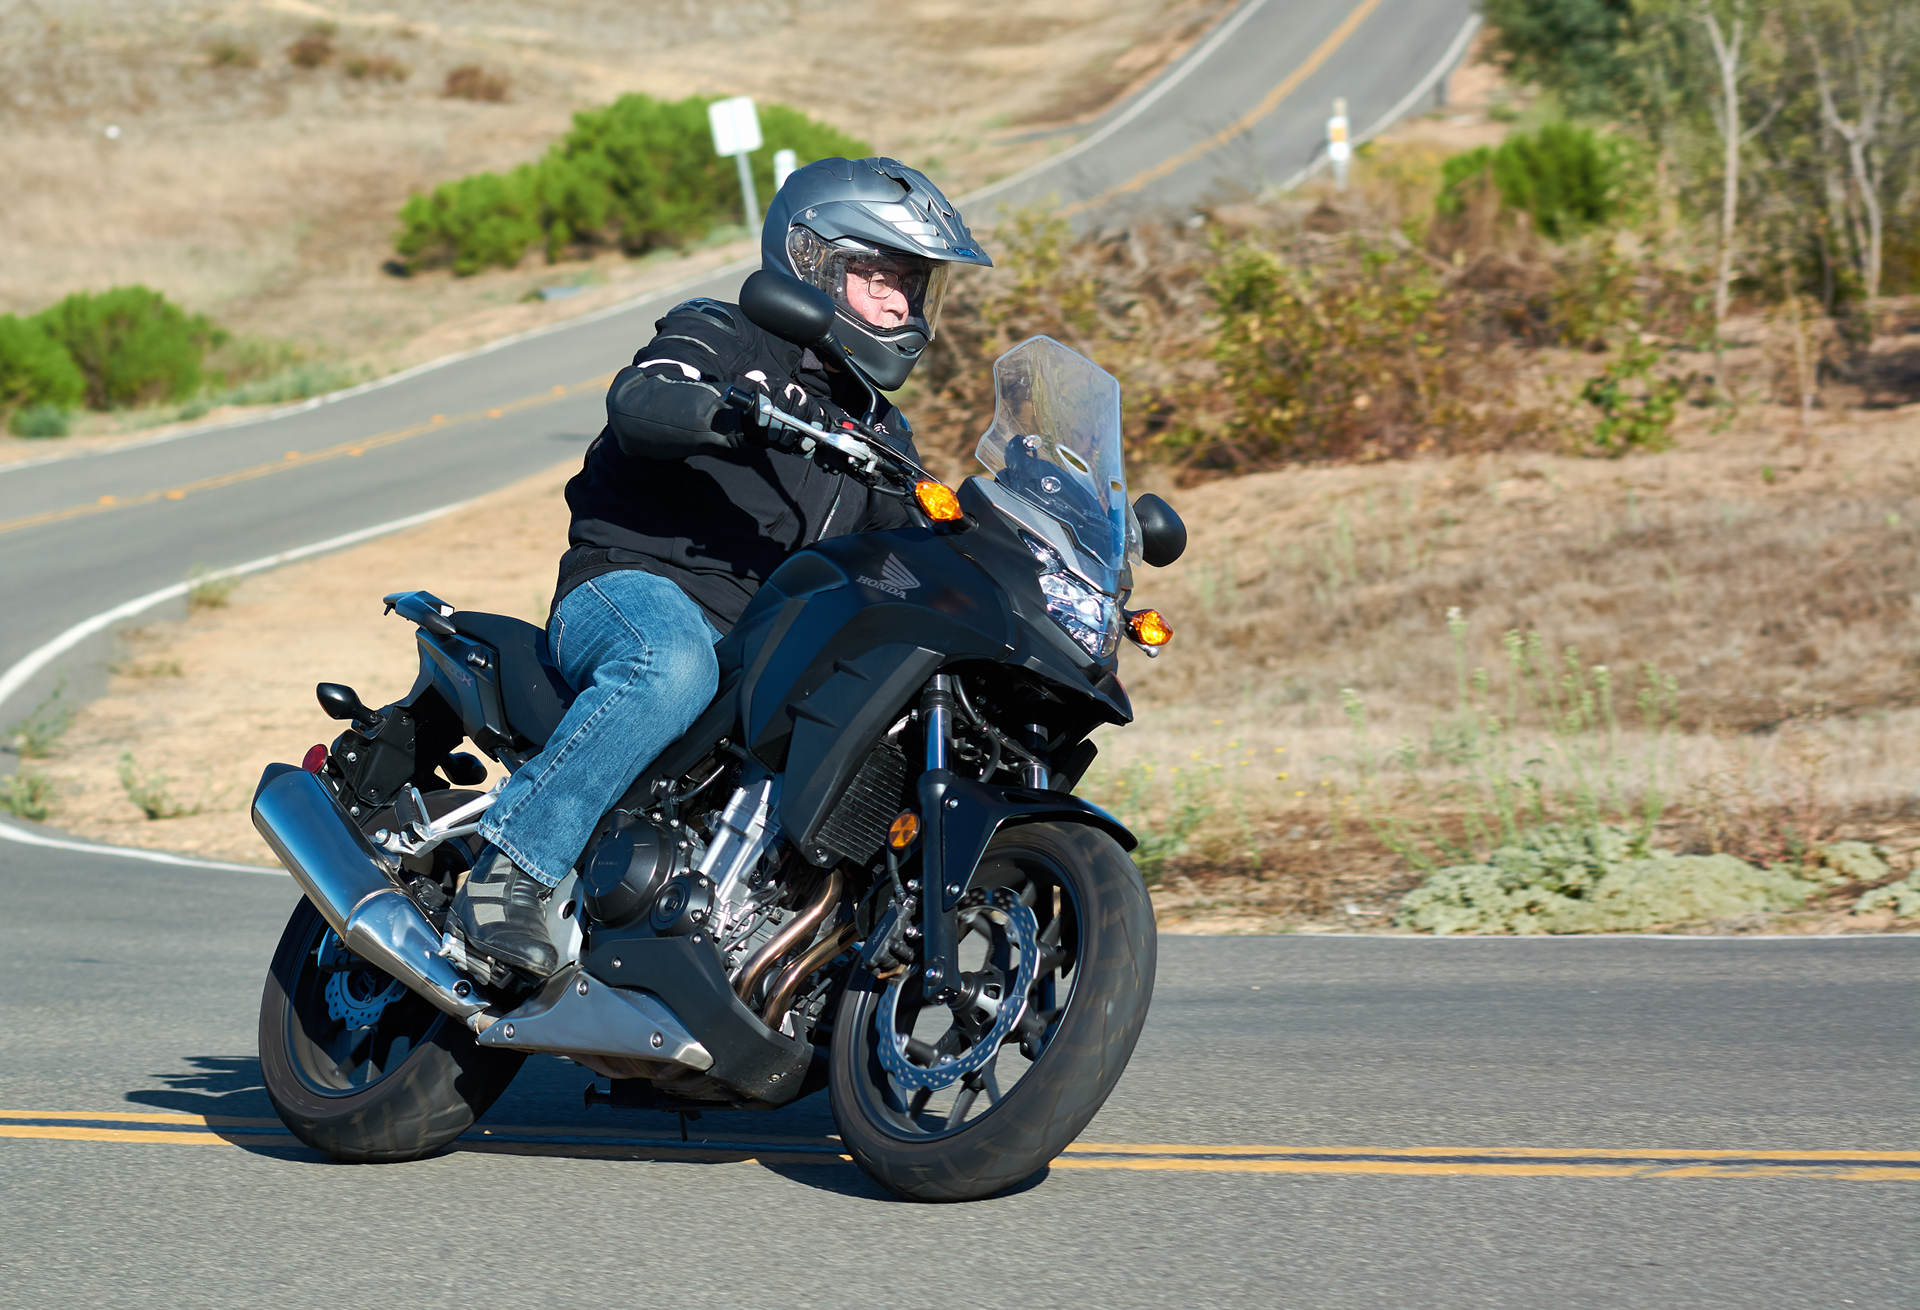 2016 Honda Cb500x Md Ride Review